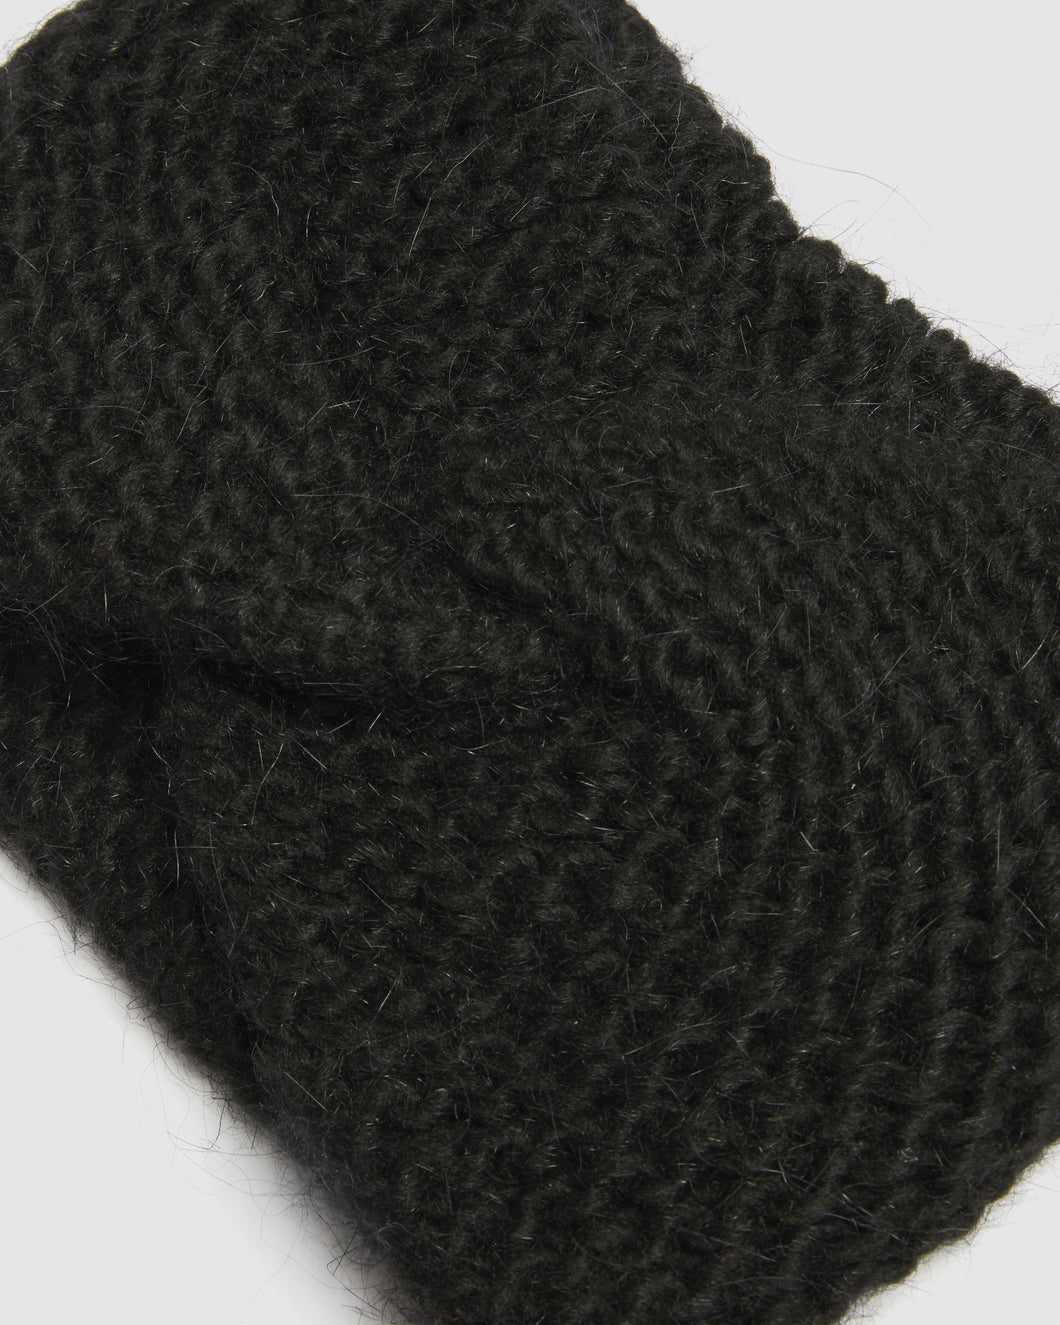 Kate and Confusion Ladies Black wool knit headband